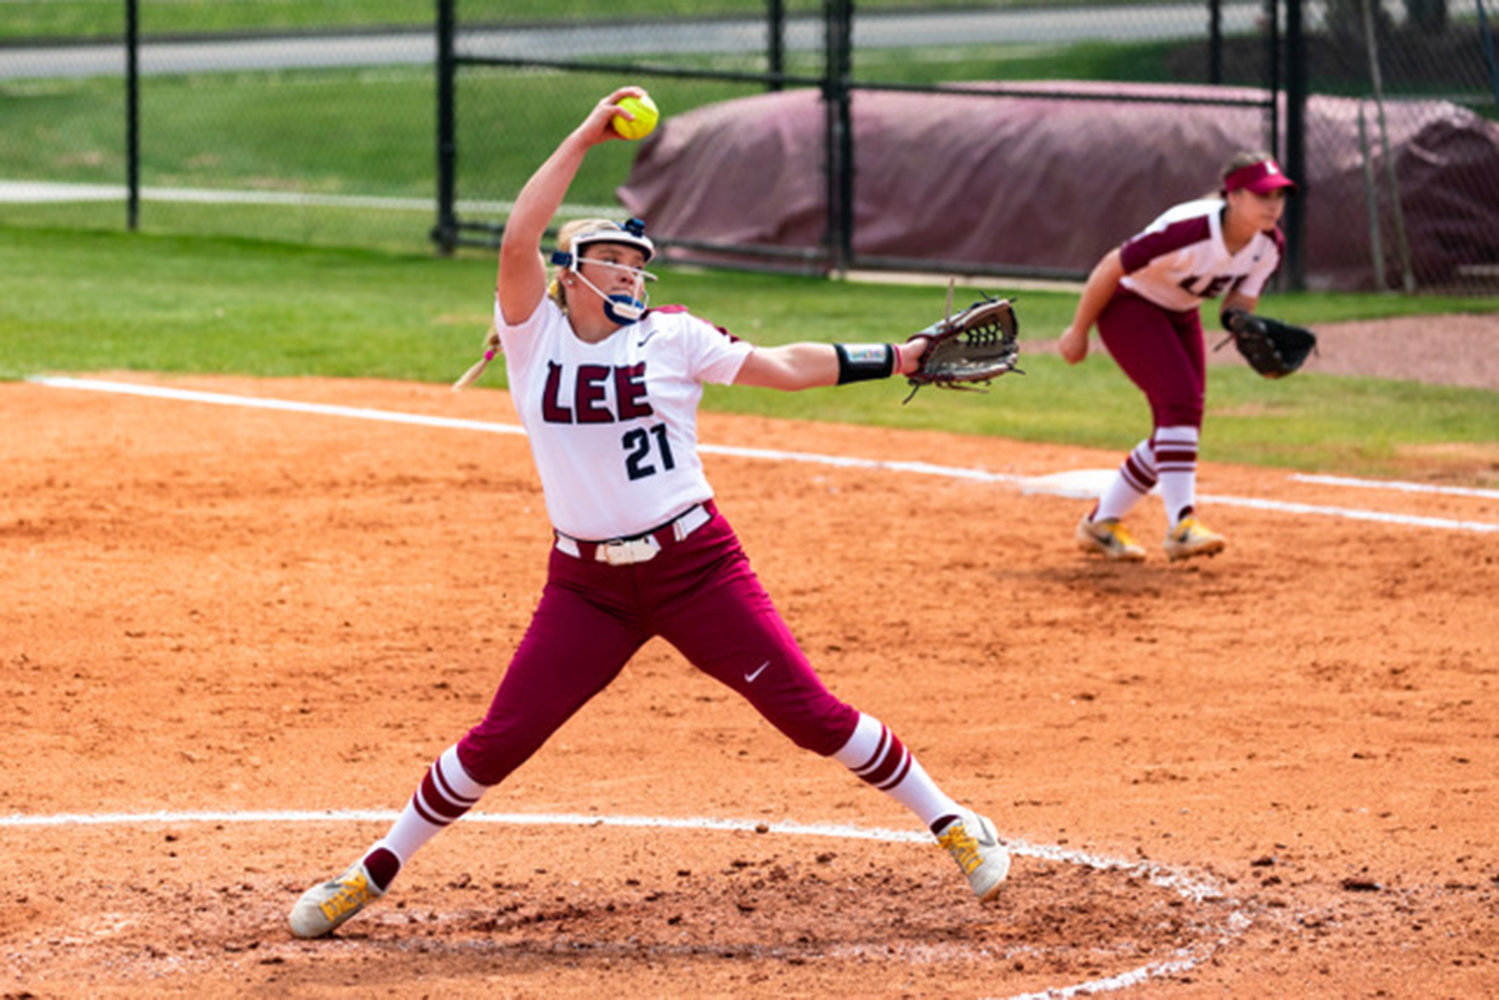 Shonna Penney earned the win in relief on Sunday for the Lady Flames.